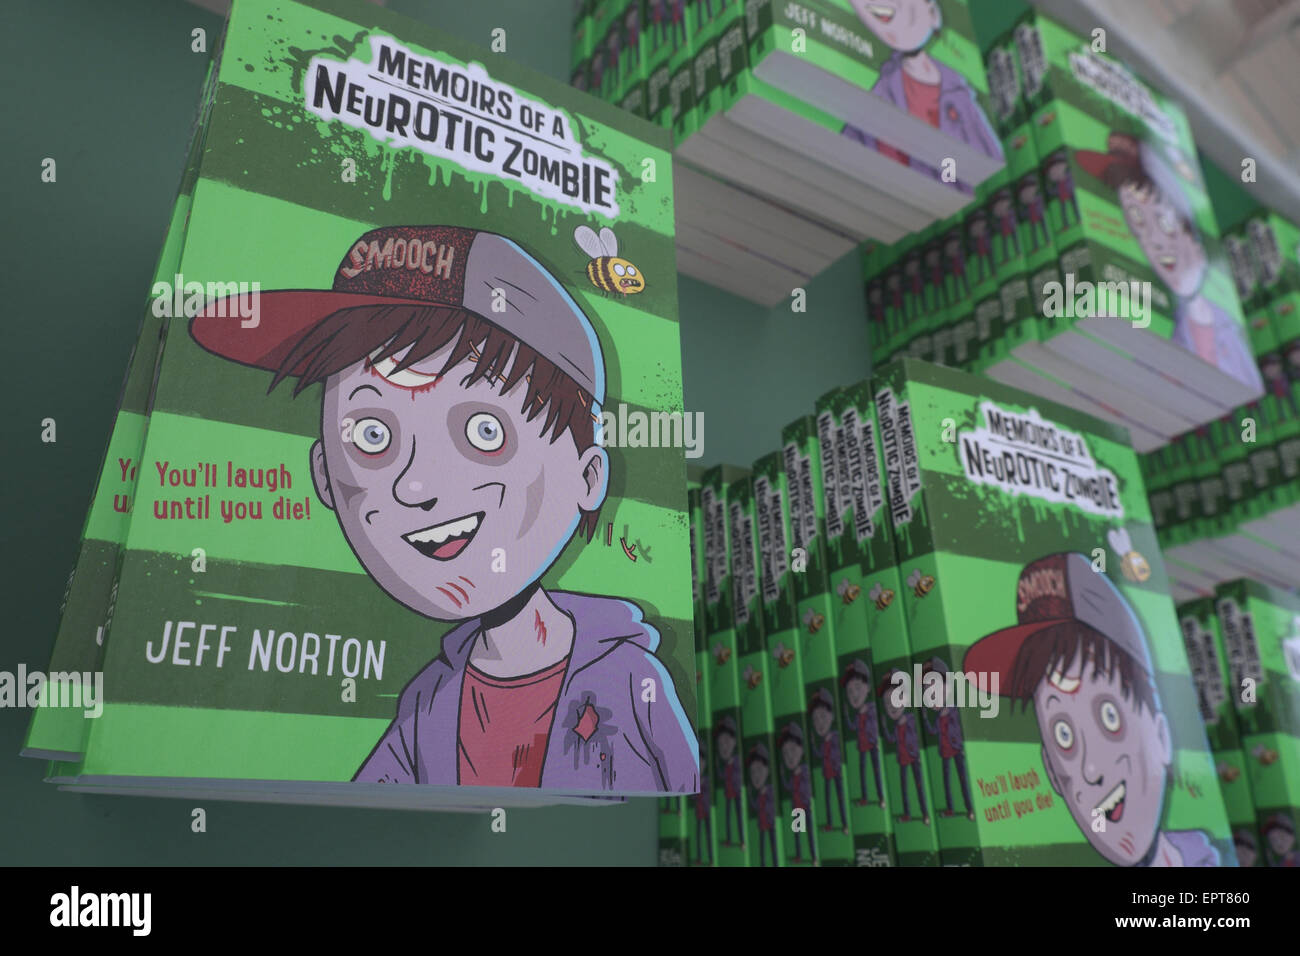 Childrens book by author writer Jeff Norton titled Memoirs of a Neurotic Zombie - Stock Image